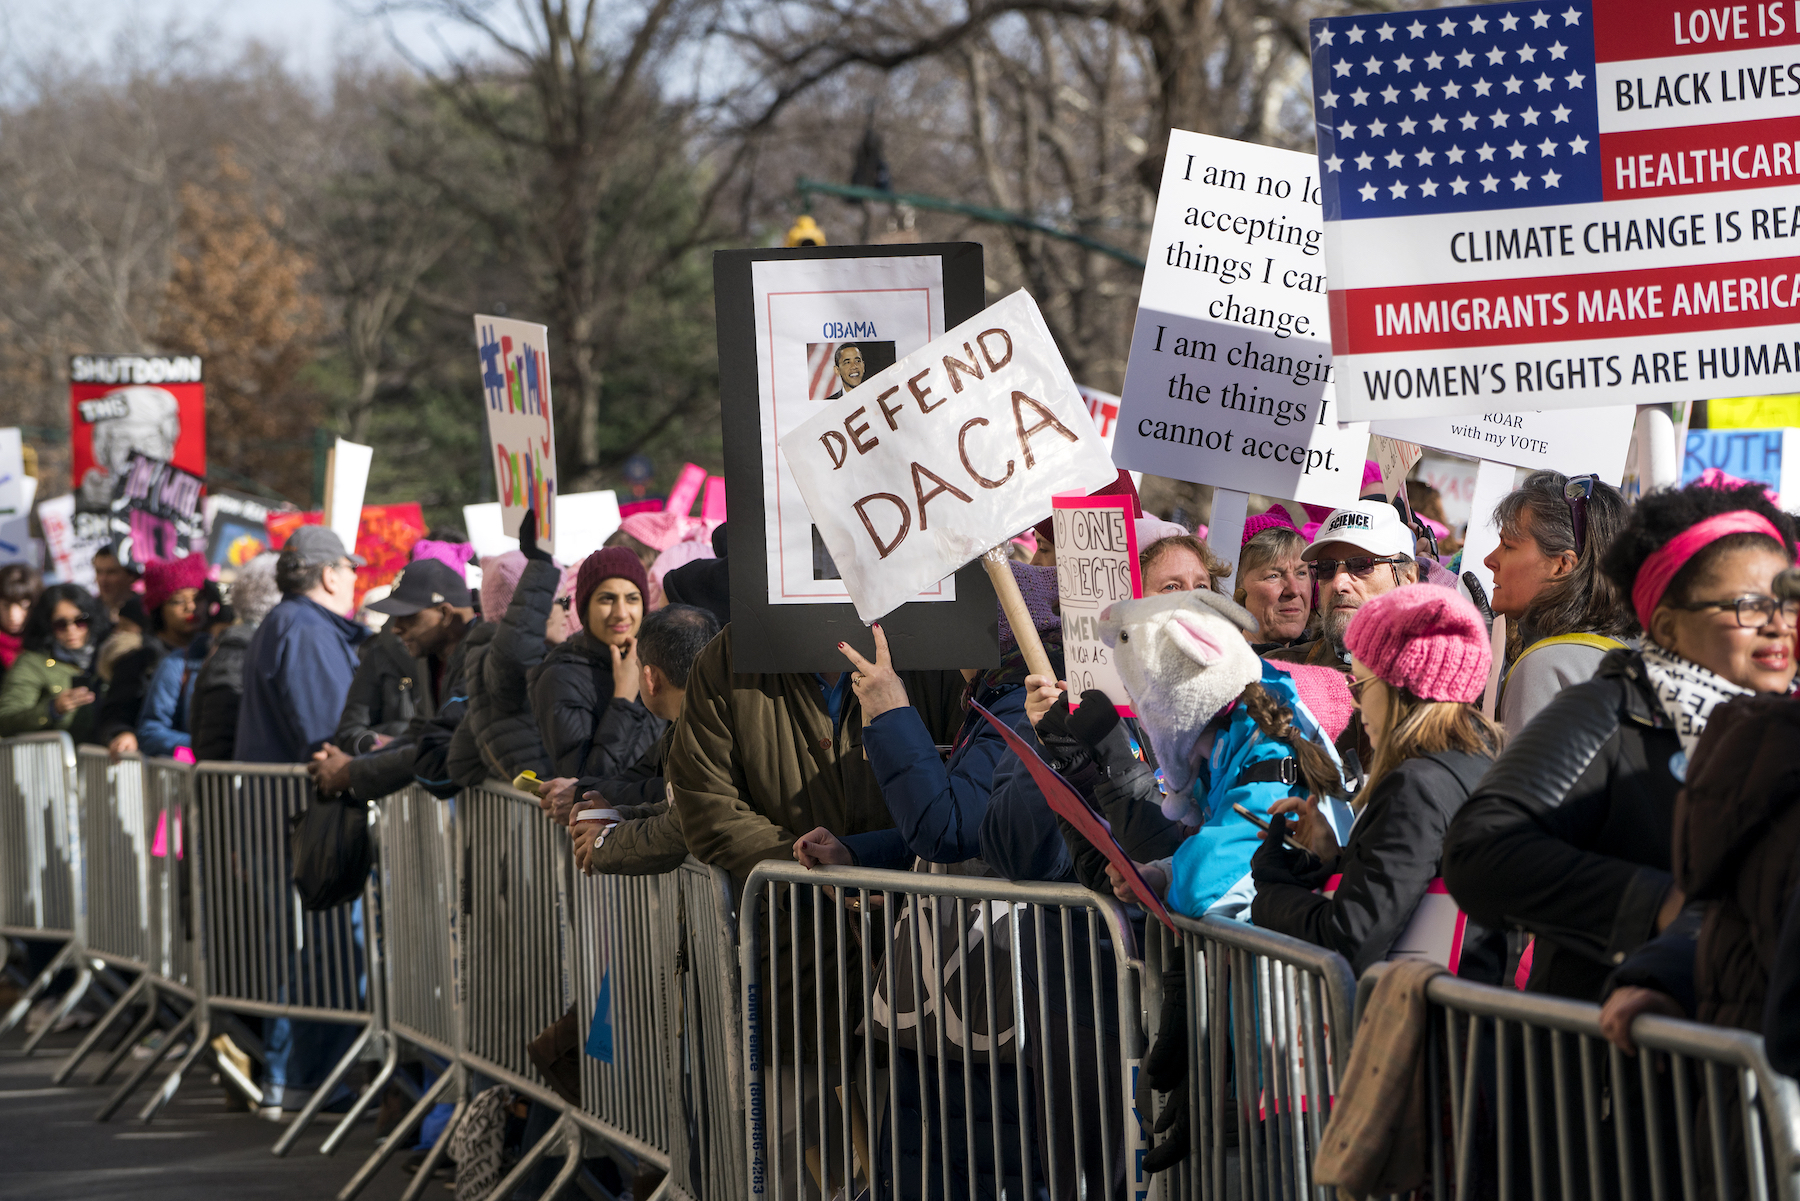 <div class='meta'><div class='origin-logo' data-origin='AP'></div><span class='caption-text' data-credit='AP Photo/Craig Ruttle'>People line up on Central Park West as they wait for the start of a march highlighting equal rights and equality for women Saturday, Jan. 20, 2018, in New York.</span></div>